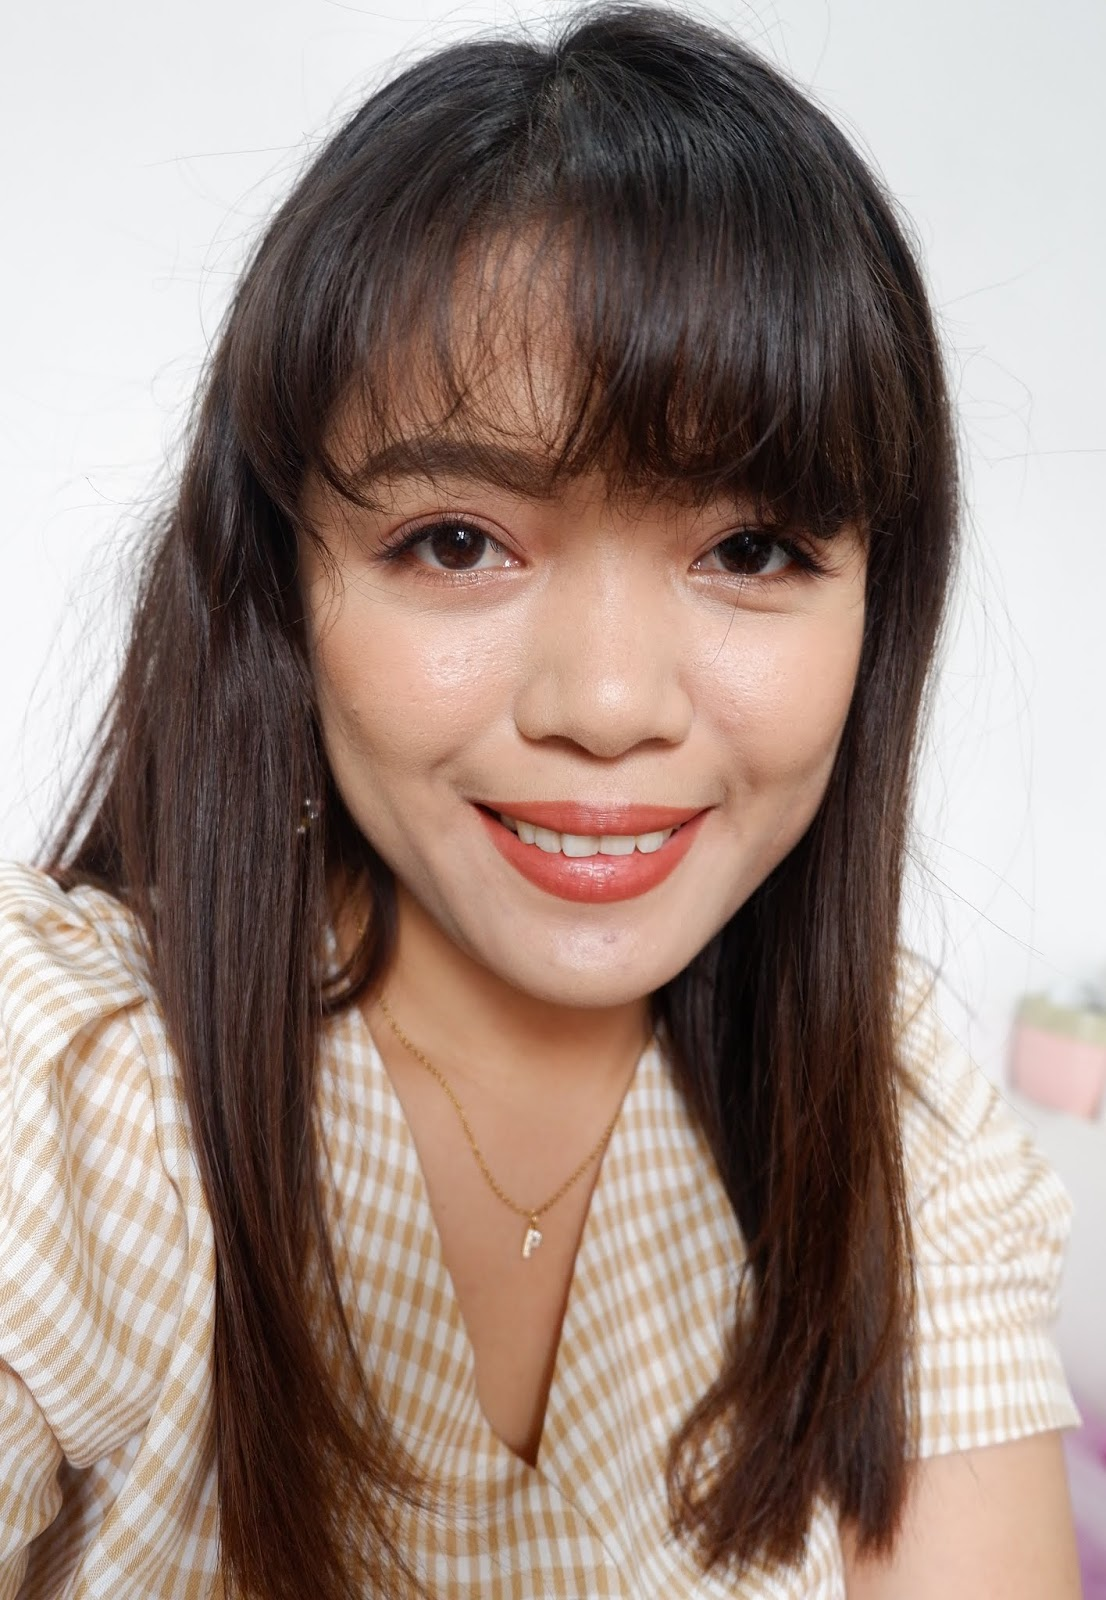 ARA COLOURS MATTE LIPSTICK FT. EVER BILENA REVIEW